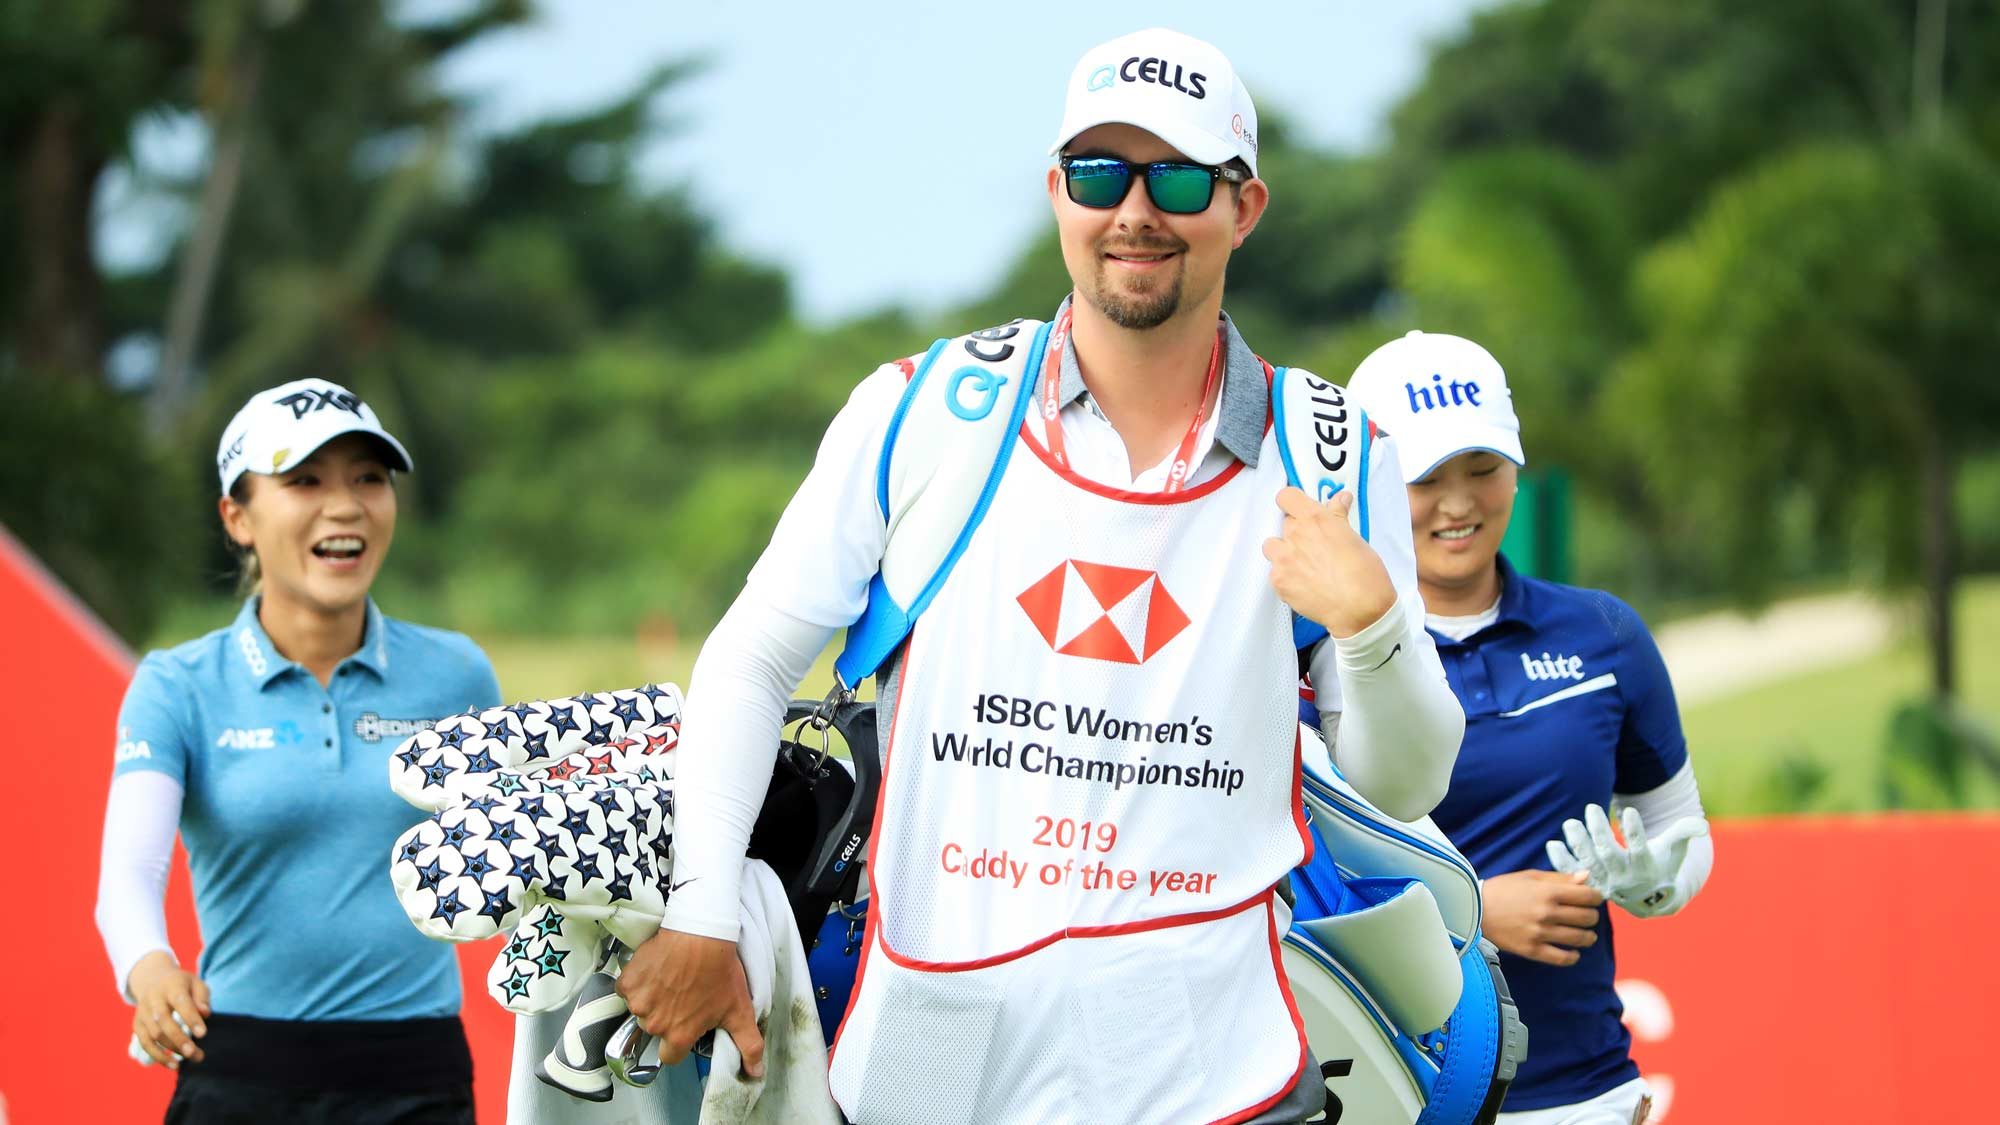 2019 Caddy of the Year Martin Bozek, caddie for Eun-Hee Ji of South Korea, walks from first tee during the third round of the HSBC Women's World Championship at Sentosa Golf Club on March 02, 2019 in Singapore.